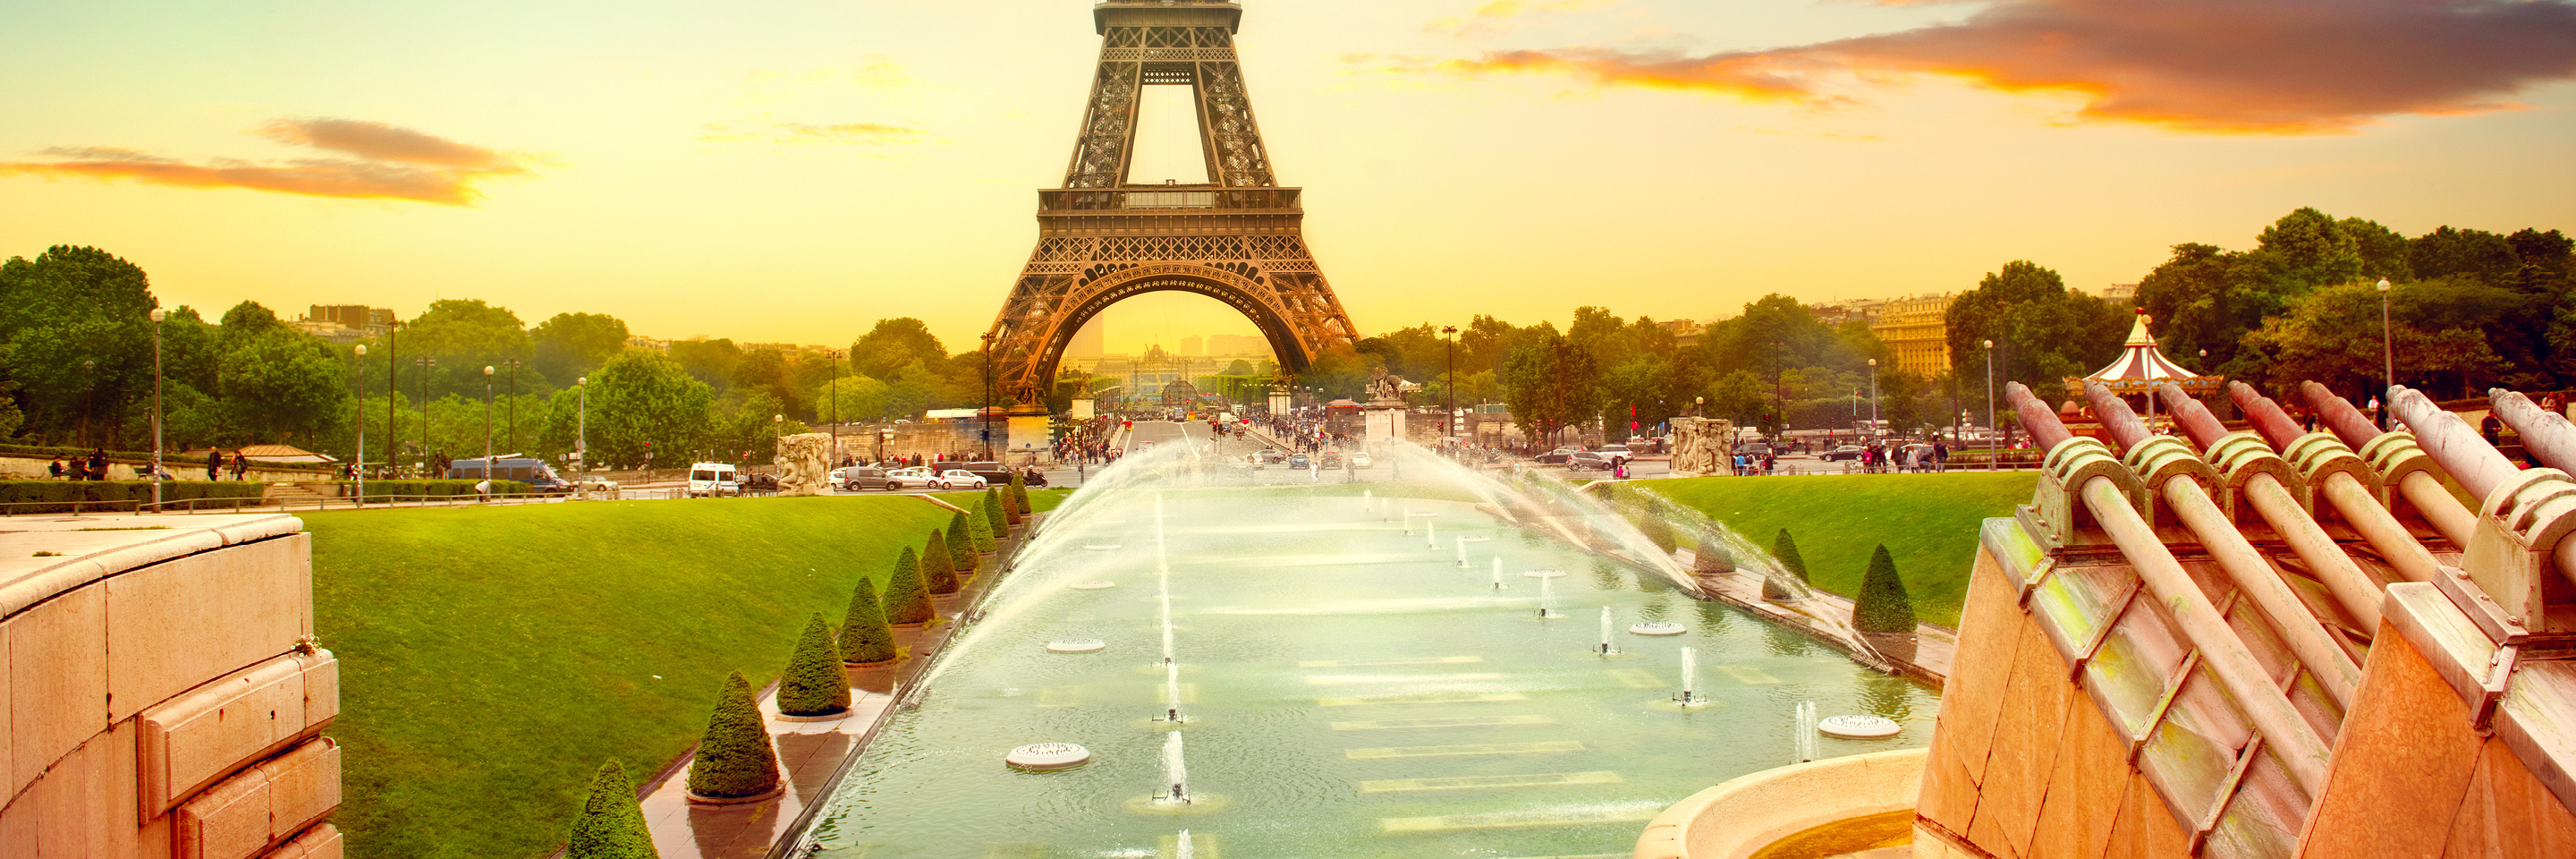 A Culinary Experience in Burgundy & Provence with 2 Nights in Paris (Southbound)